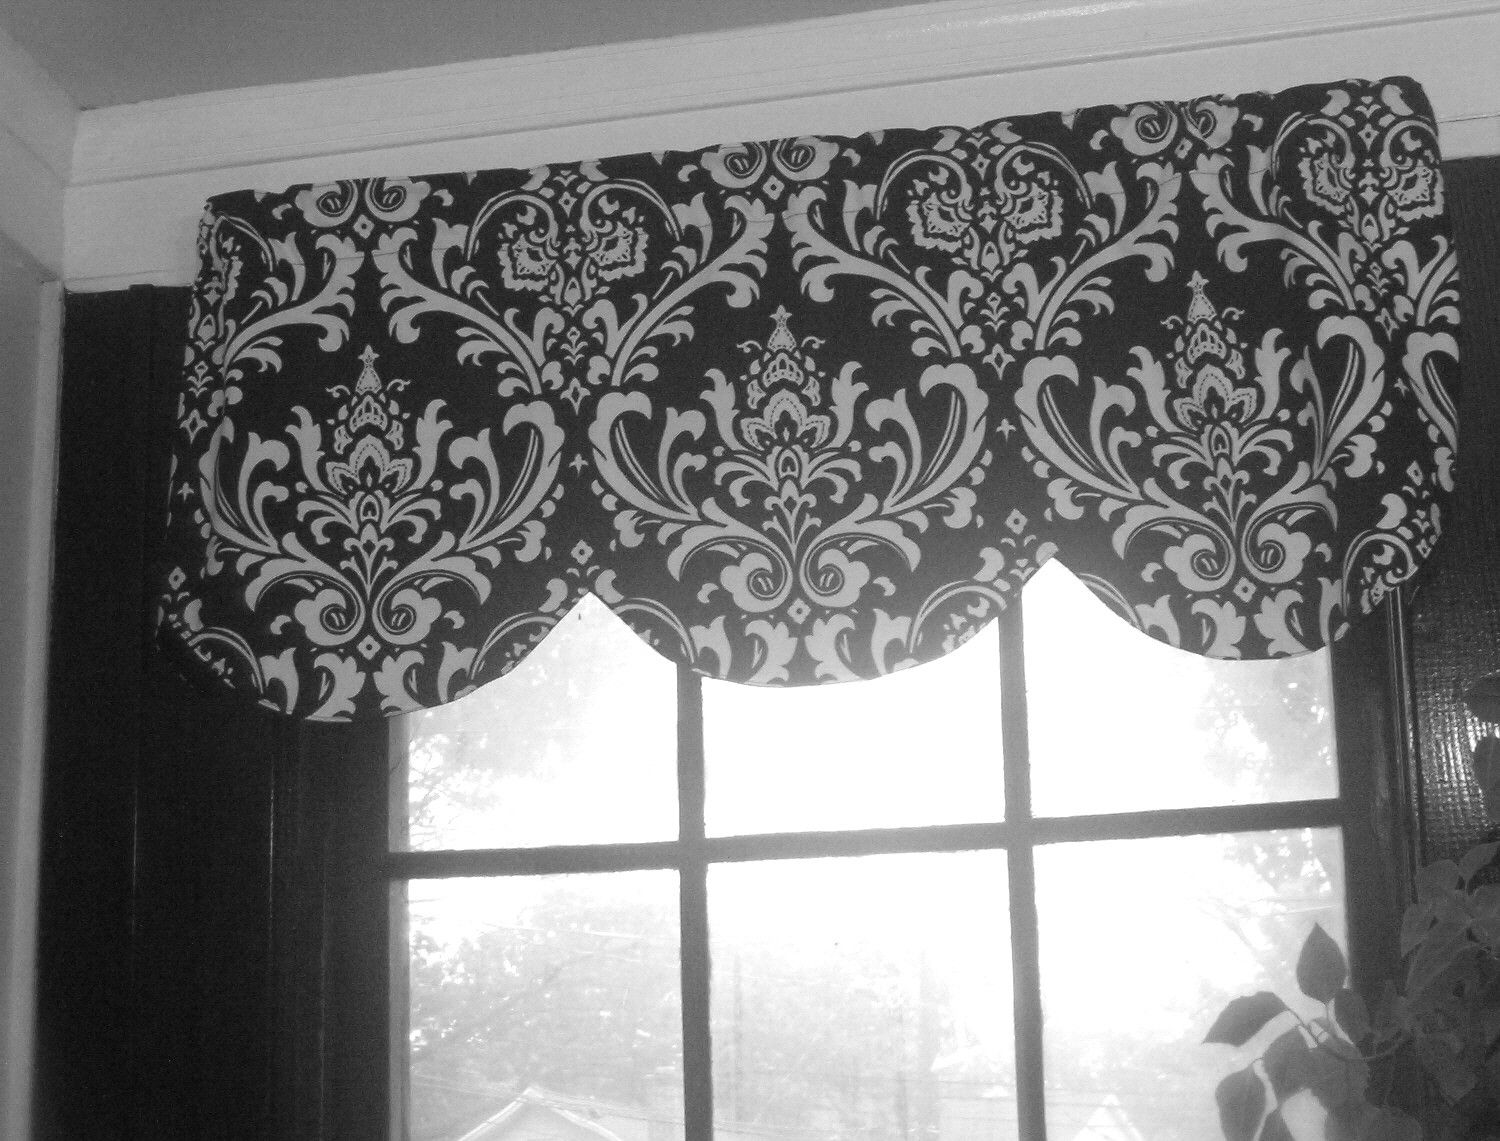 Lined Scallop Valance Black White Damask 42 X 16 Inches Custom Sizes Available By Kirtamdesigns On Etsy